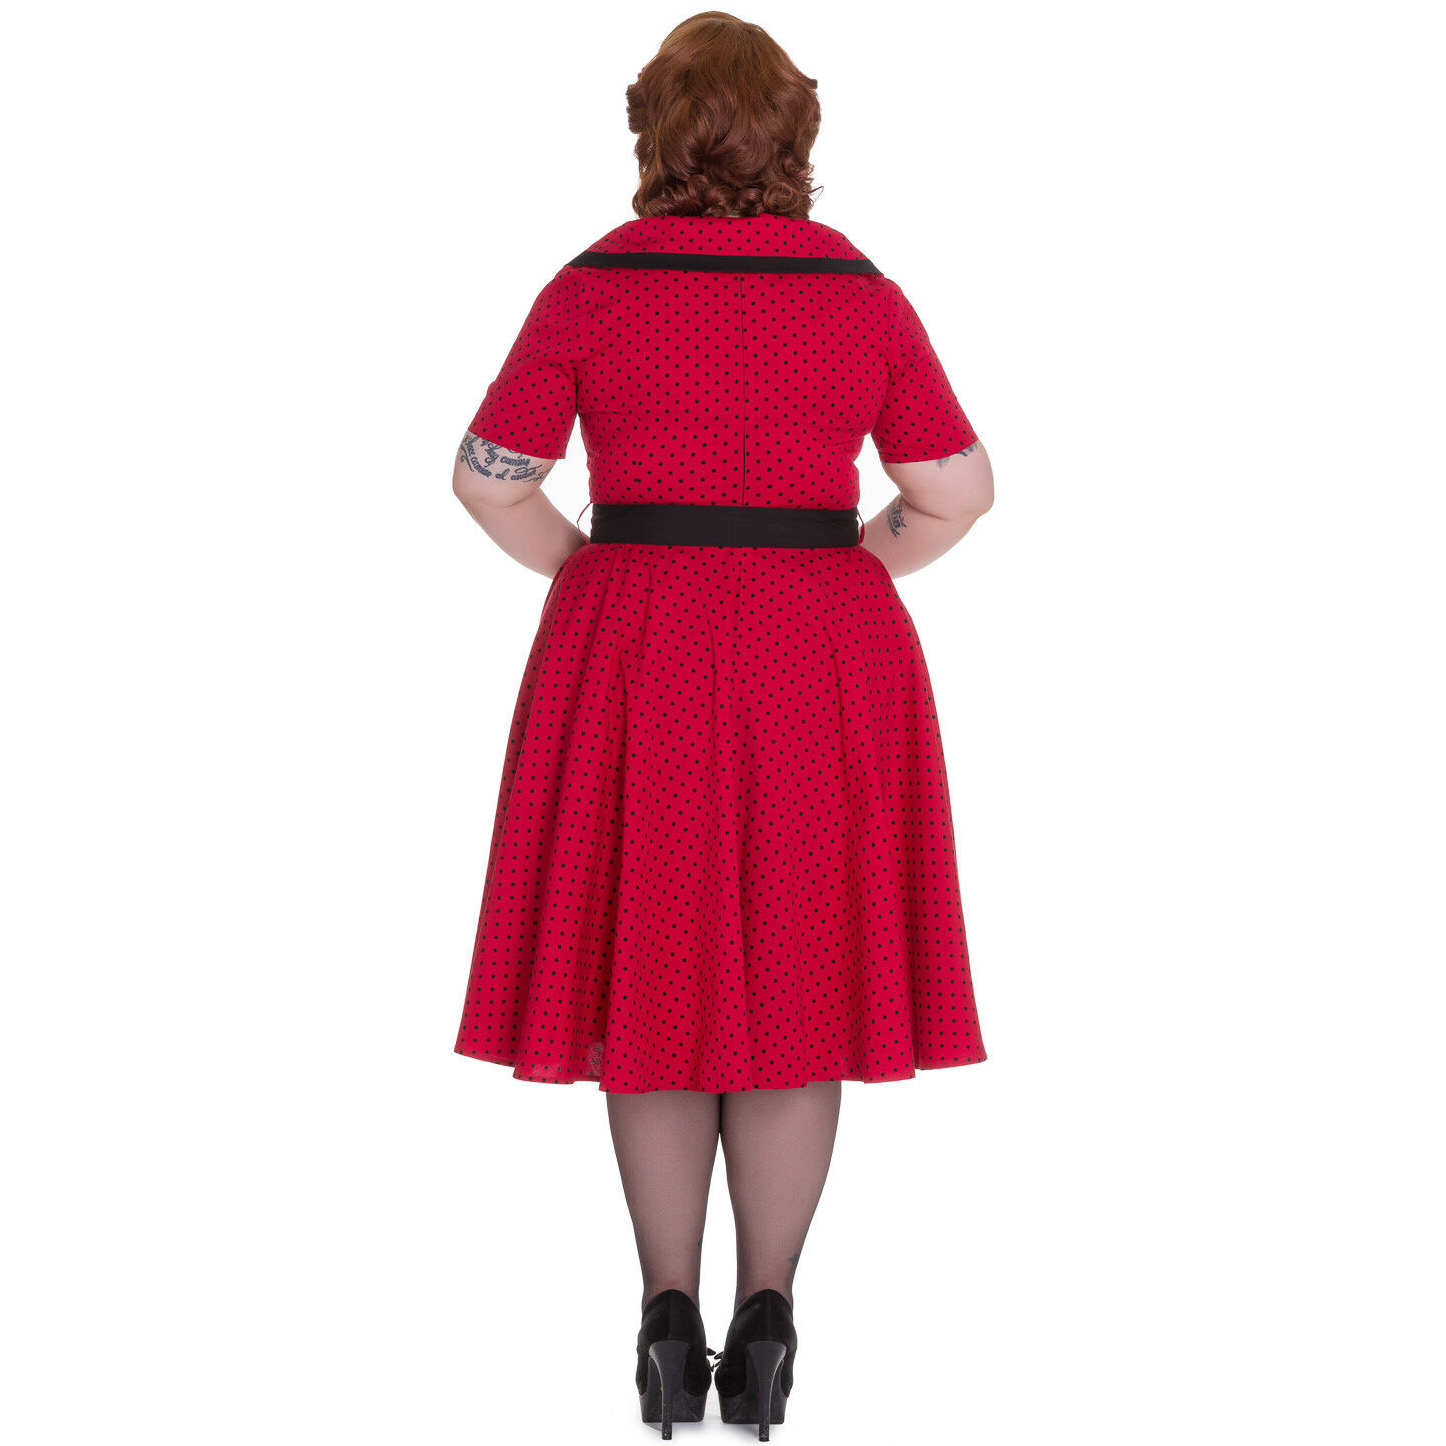 Hell-Bunny-40s-50s-Pin-Up-Swing-Dress-MIMI-Polka-Dot-Black-Red-All-Sizes thumbnail 5